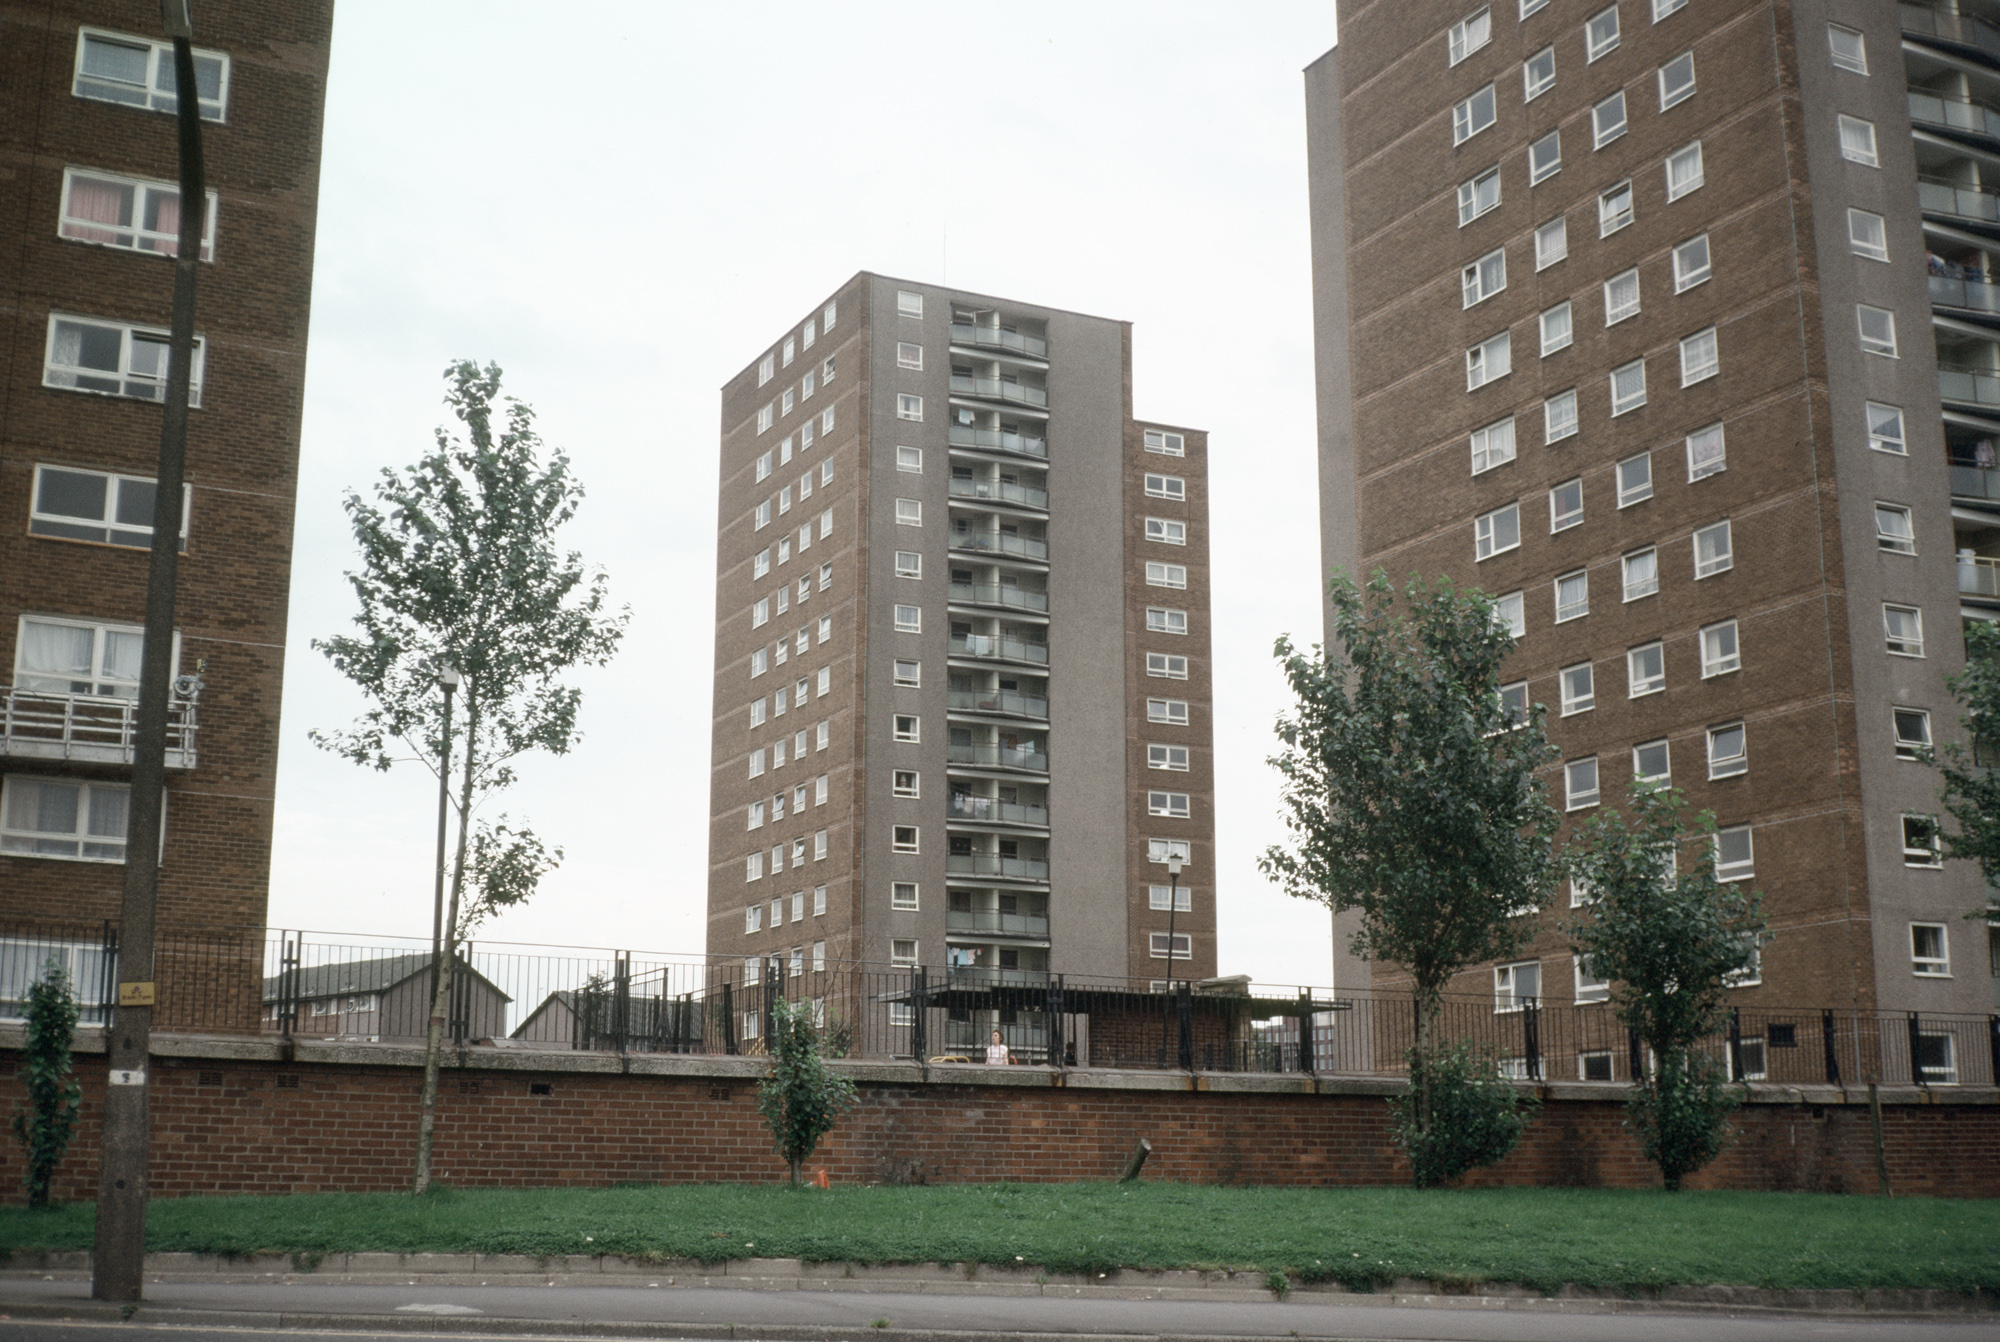 St george s tower block